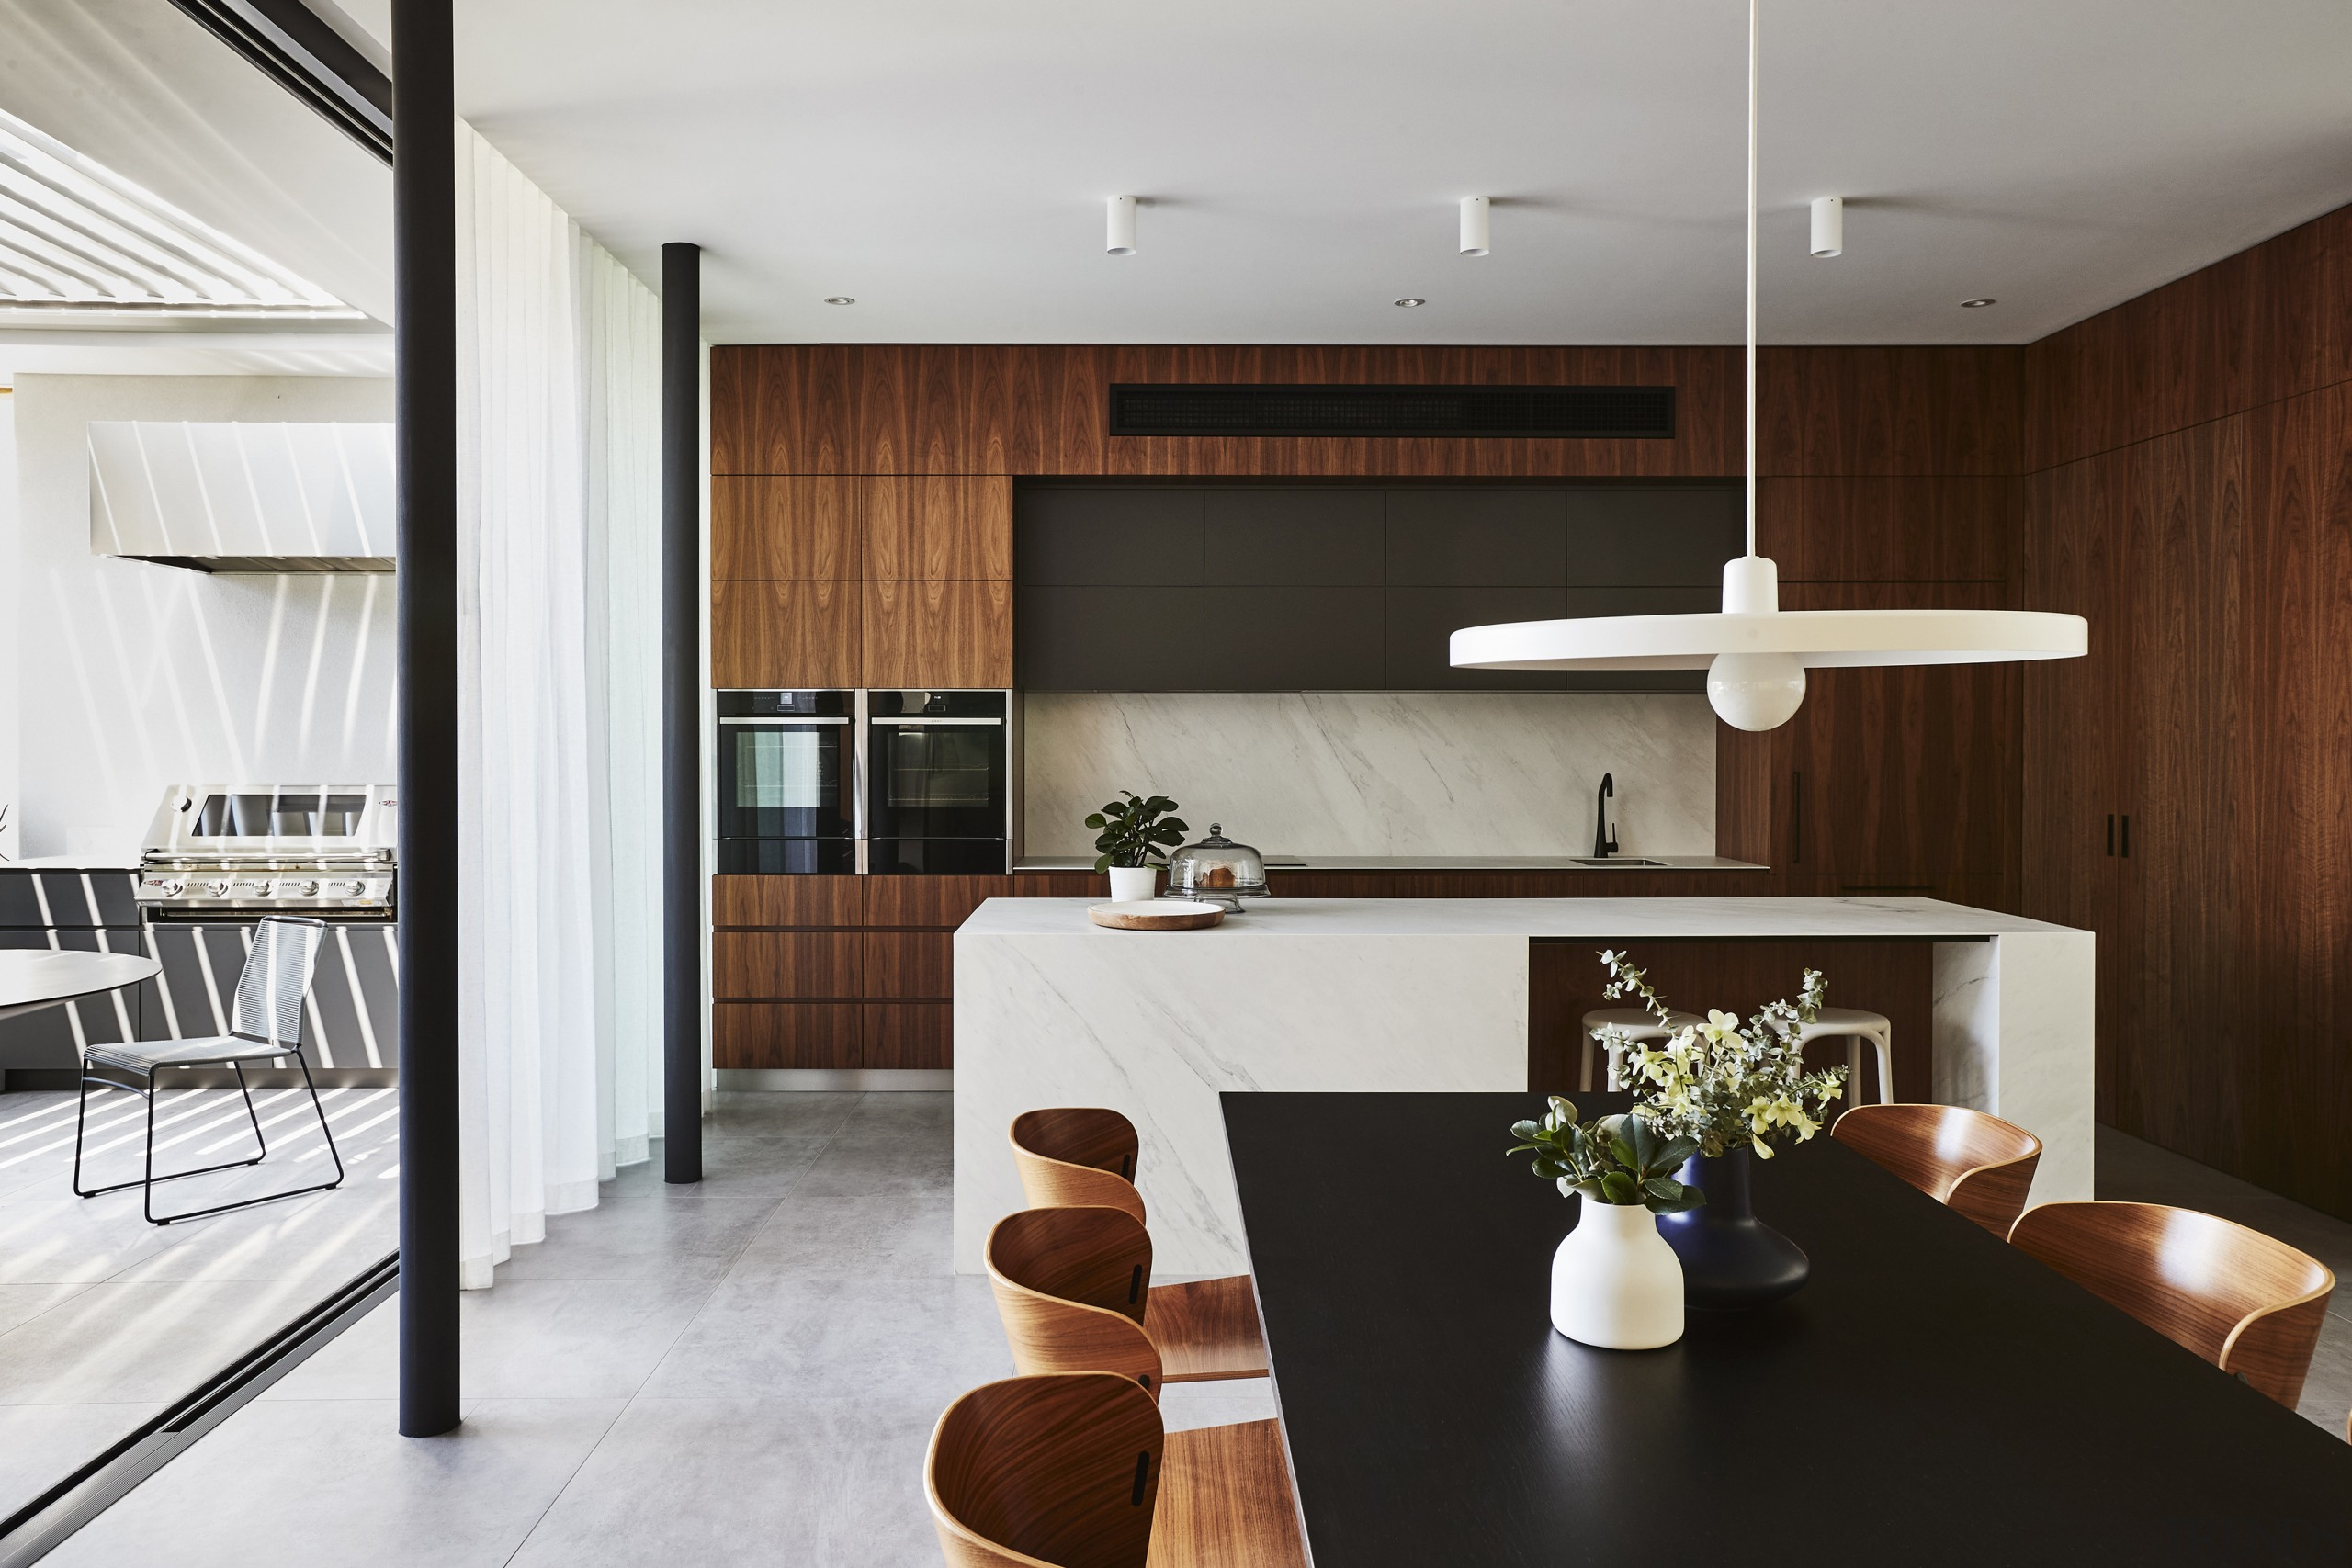 The ground floor family living areas – kitchen,